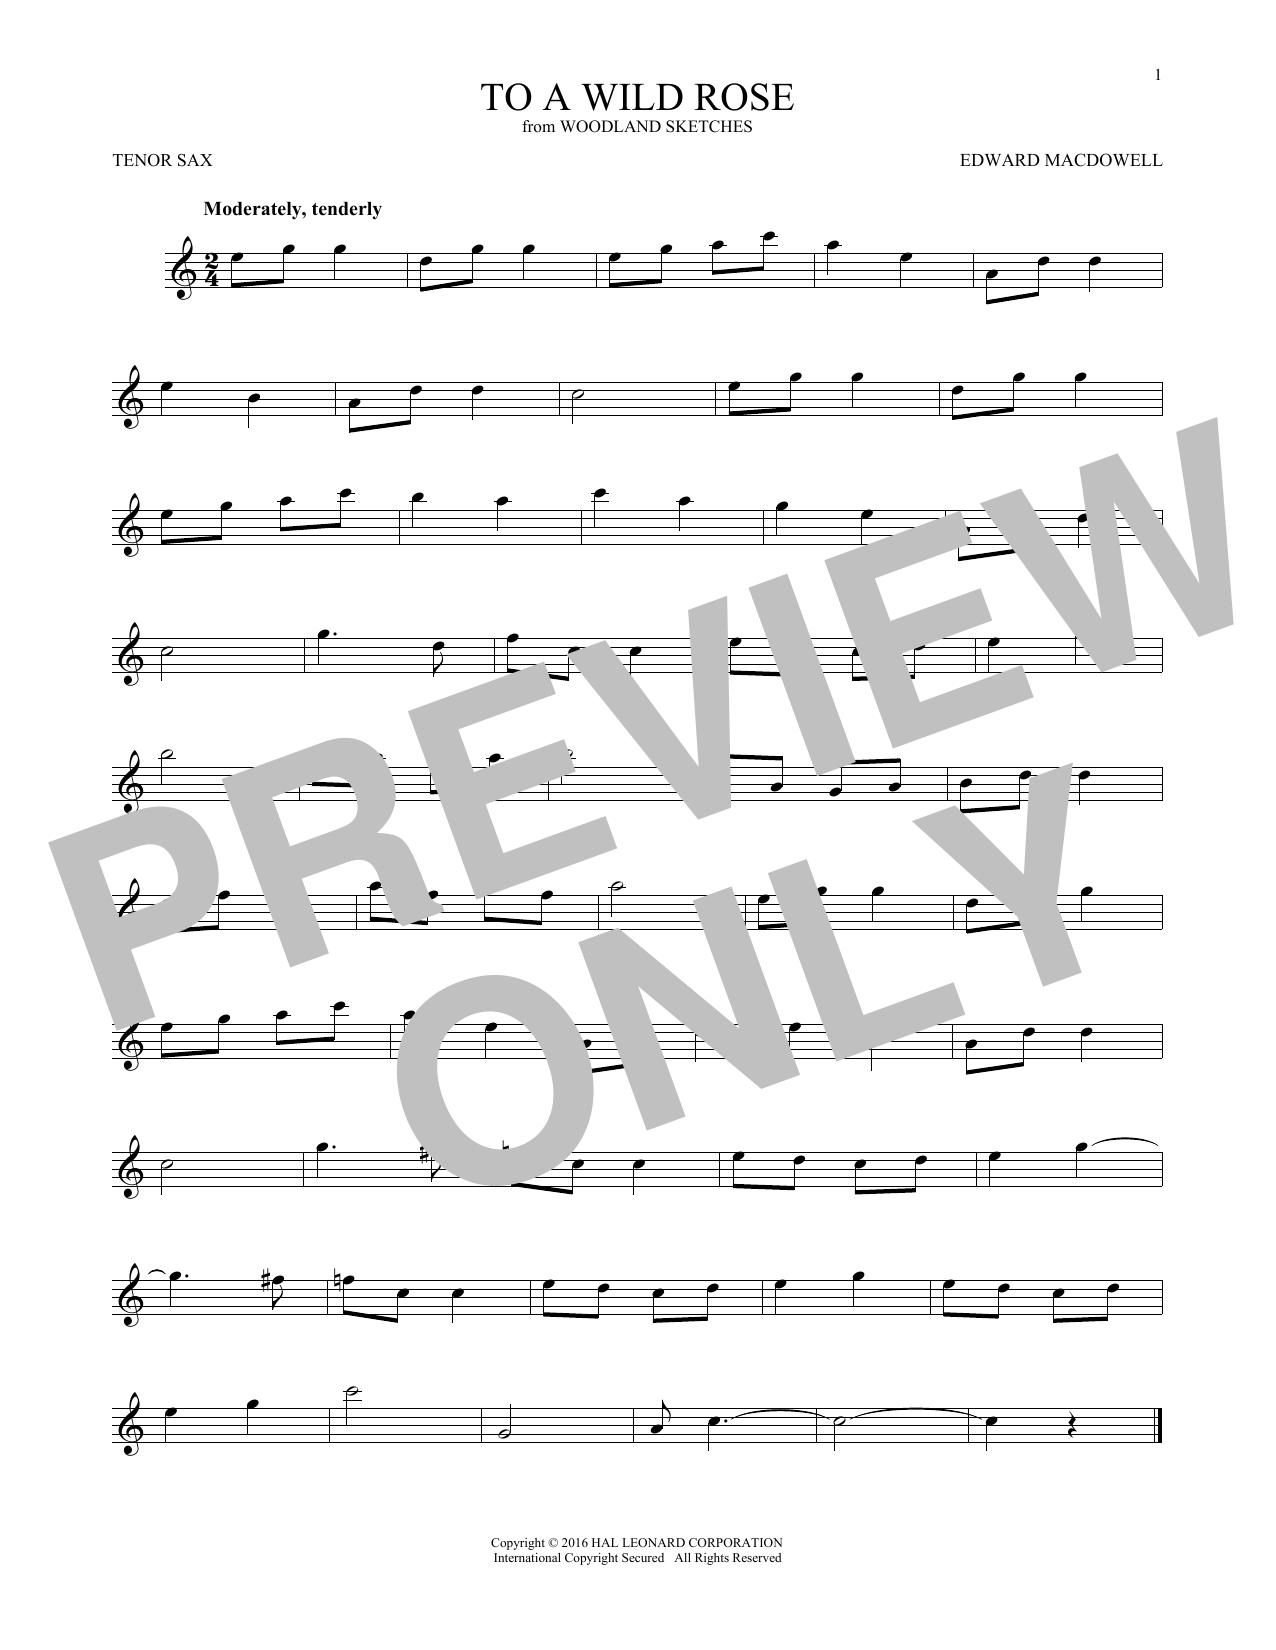 Edward MacDowell To A Wild Rose, Op. 51, No. 1 sheet music notes and chords. Download Printable PDF.